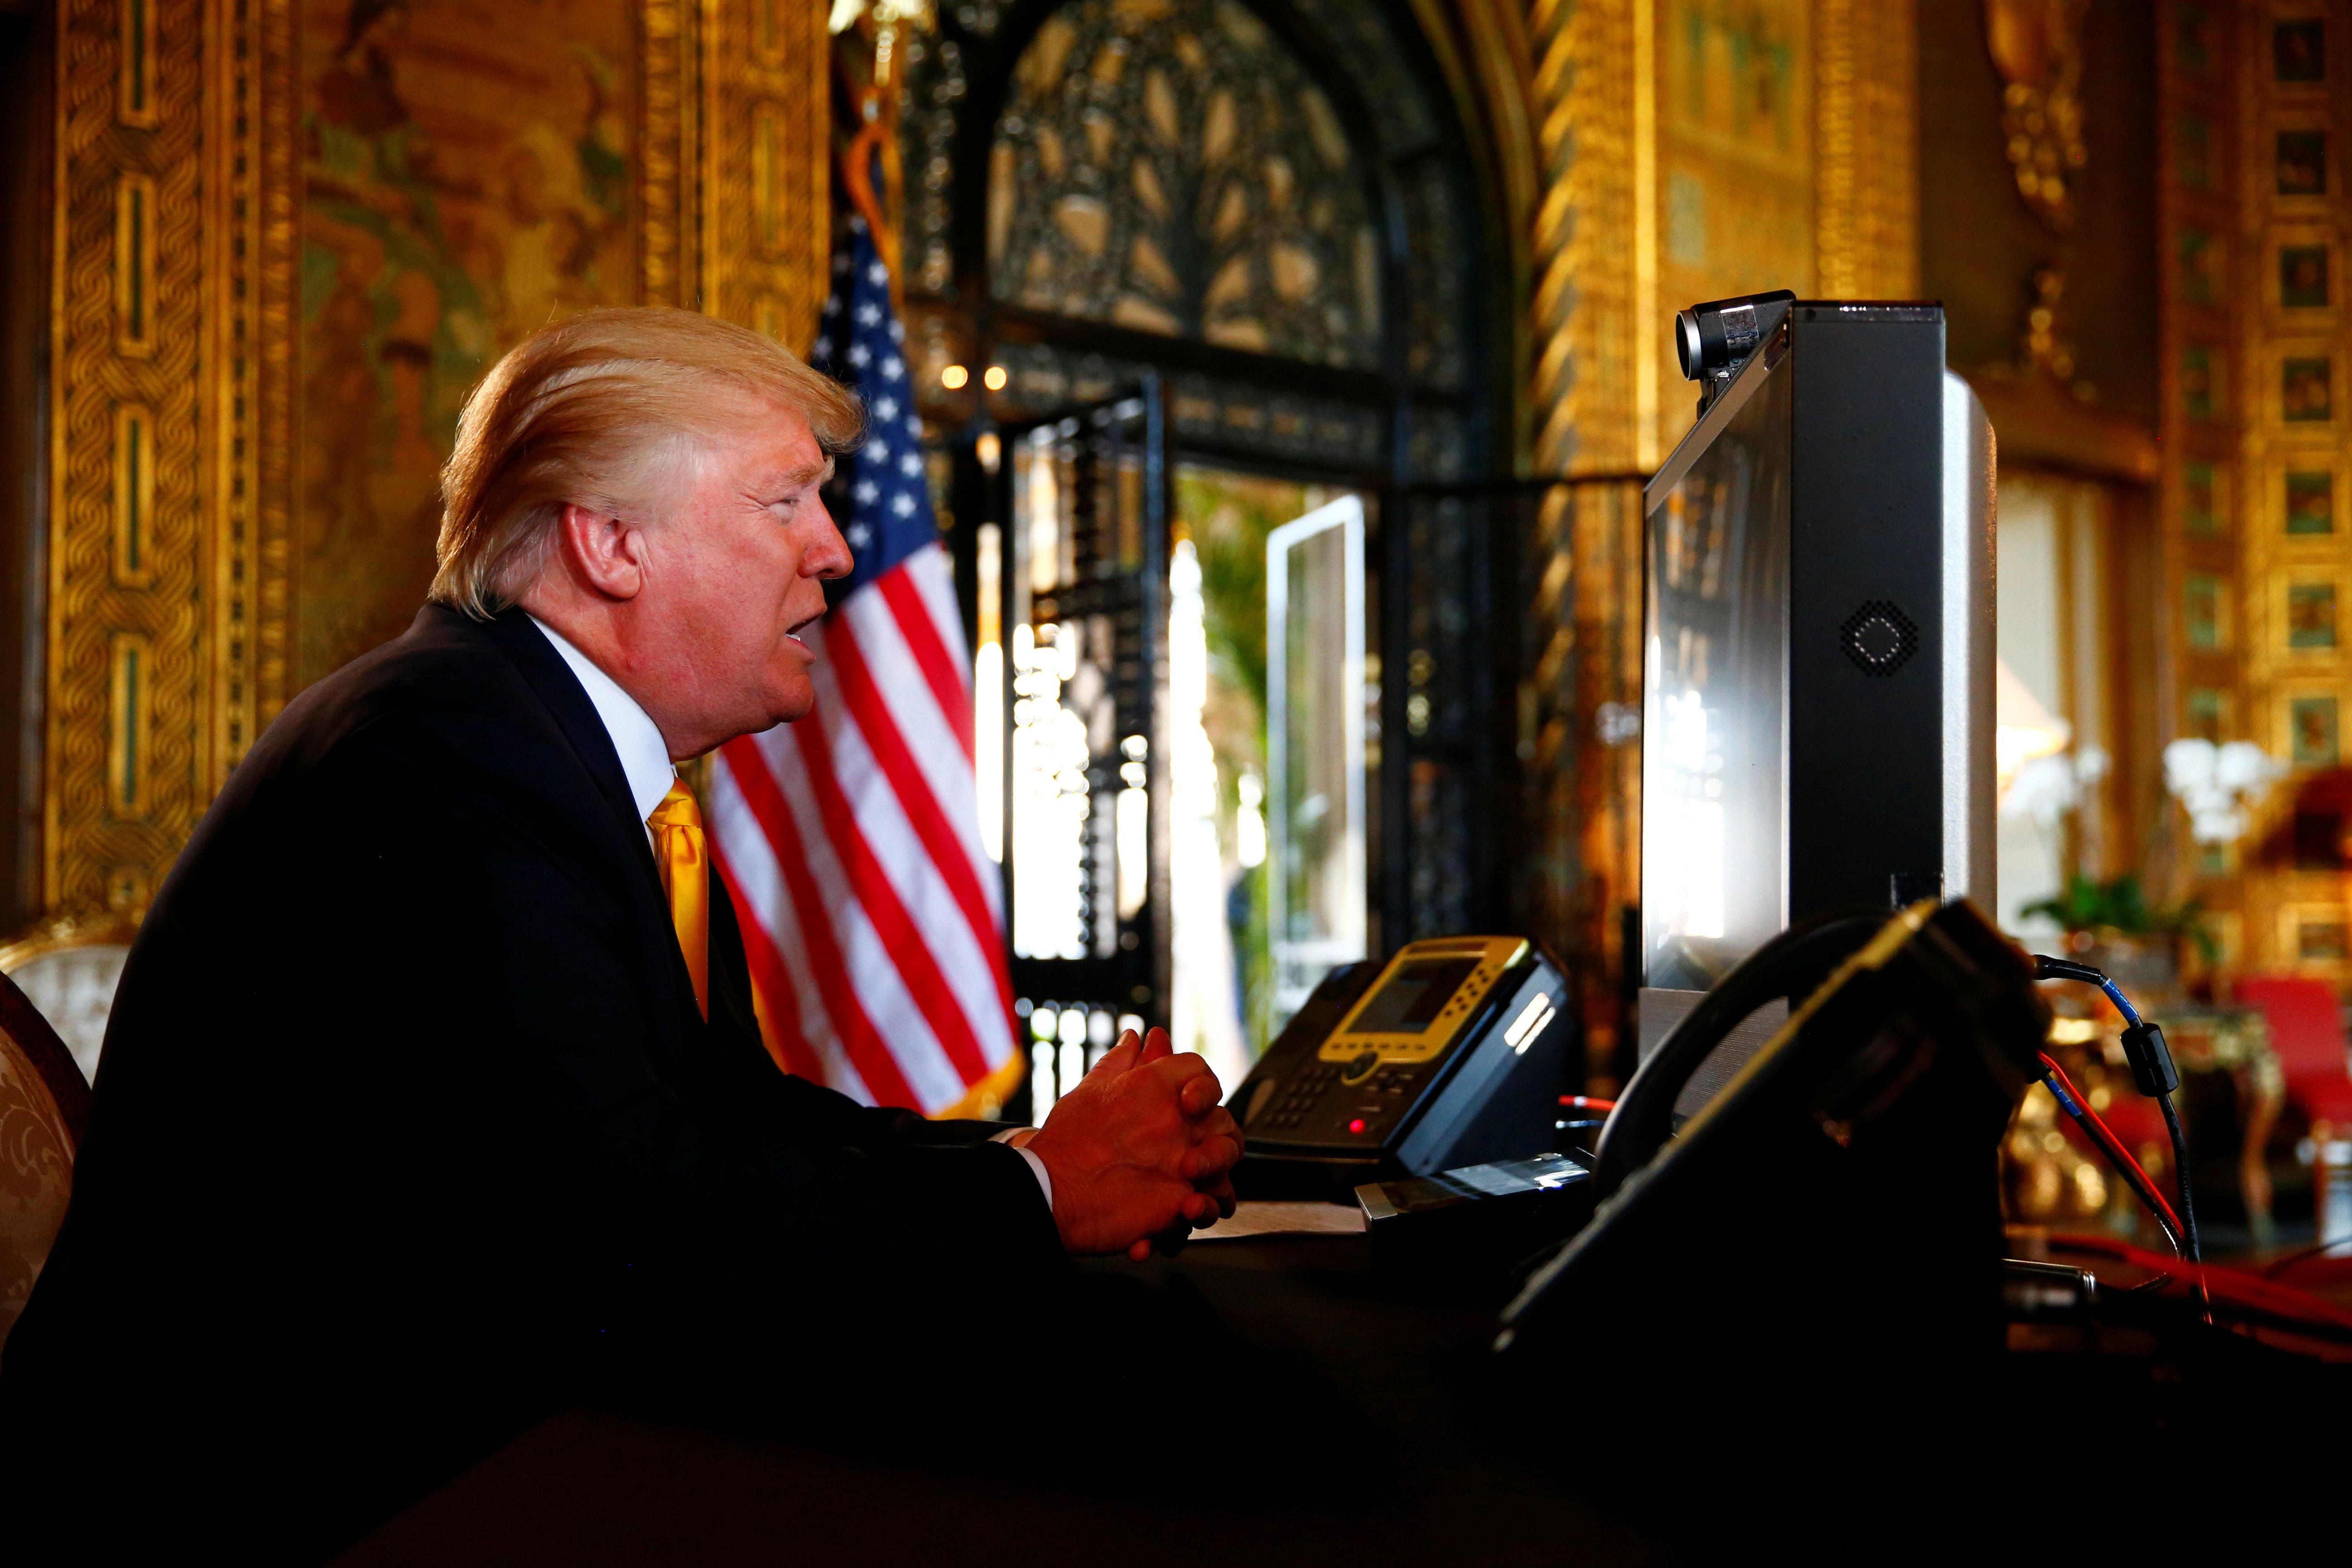 Donald Trump in video-conference call from Mar-a-Lago to US troops stationed abroad